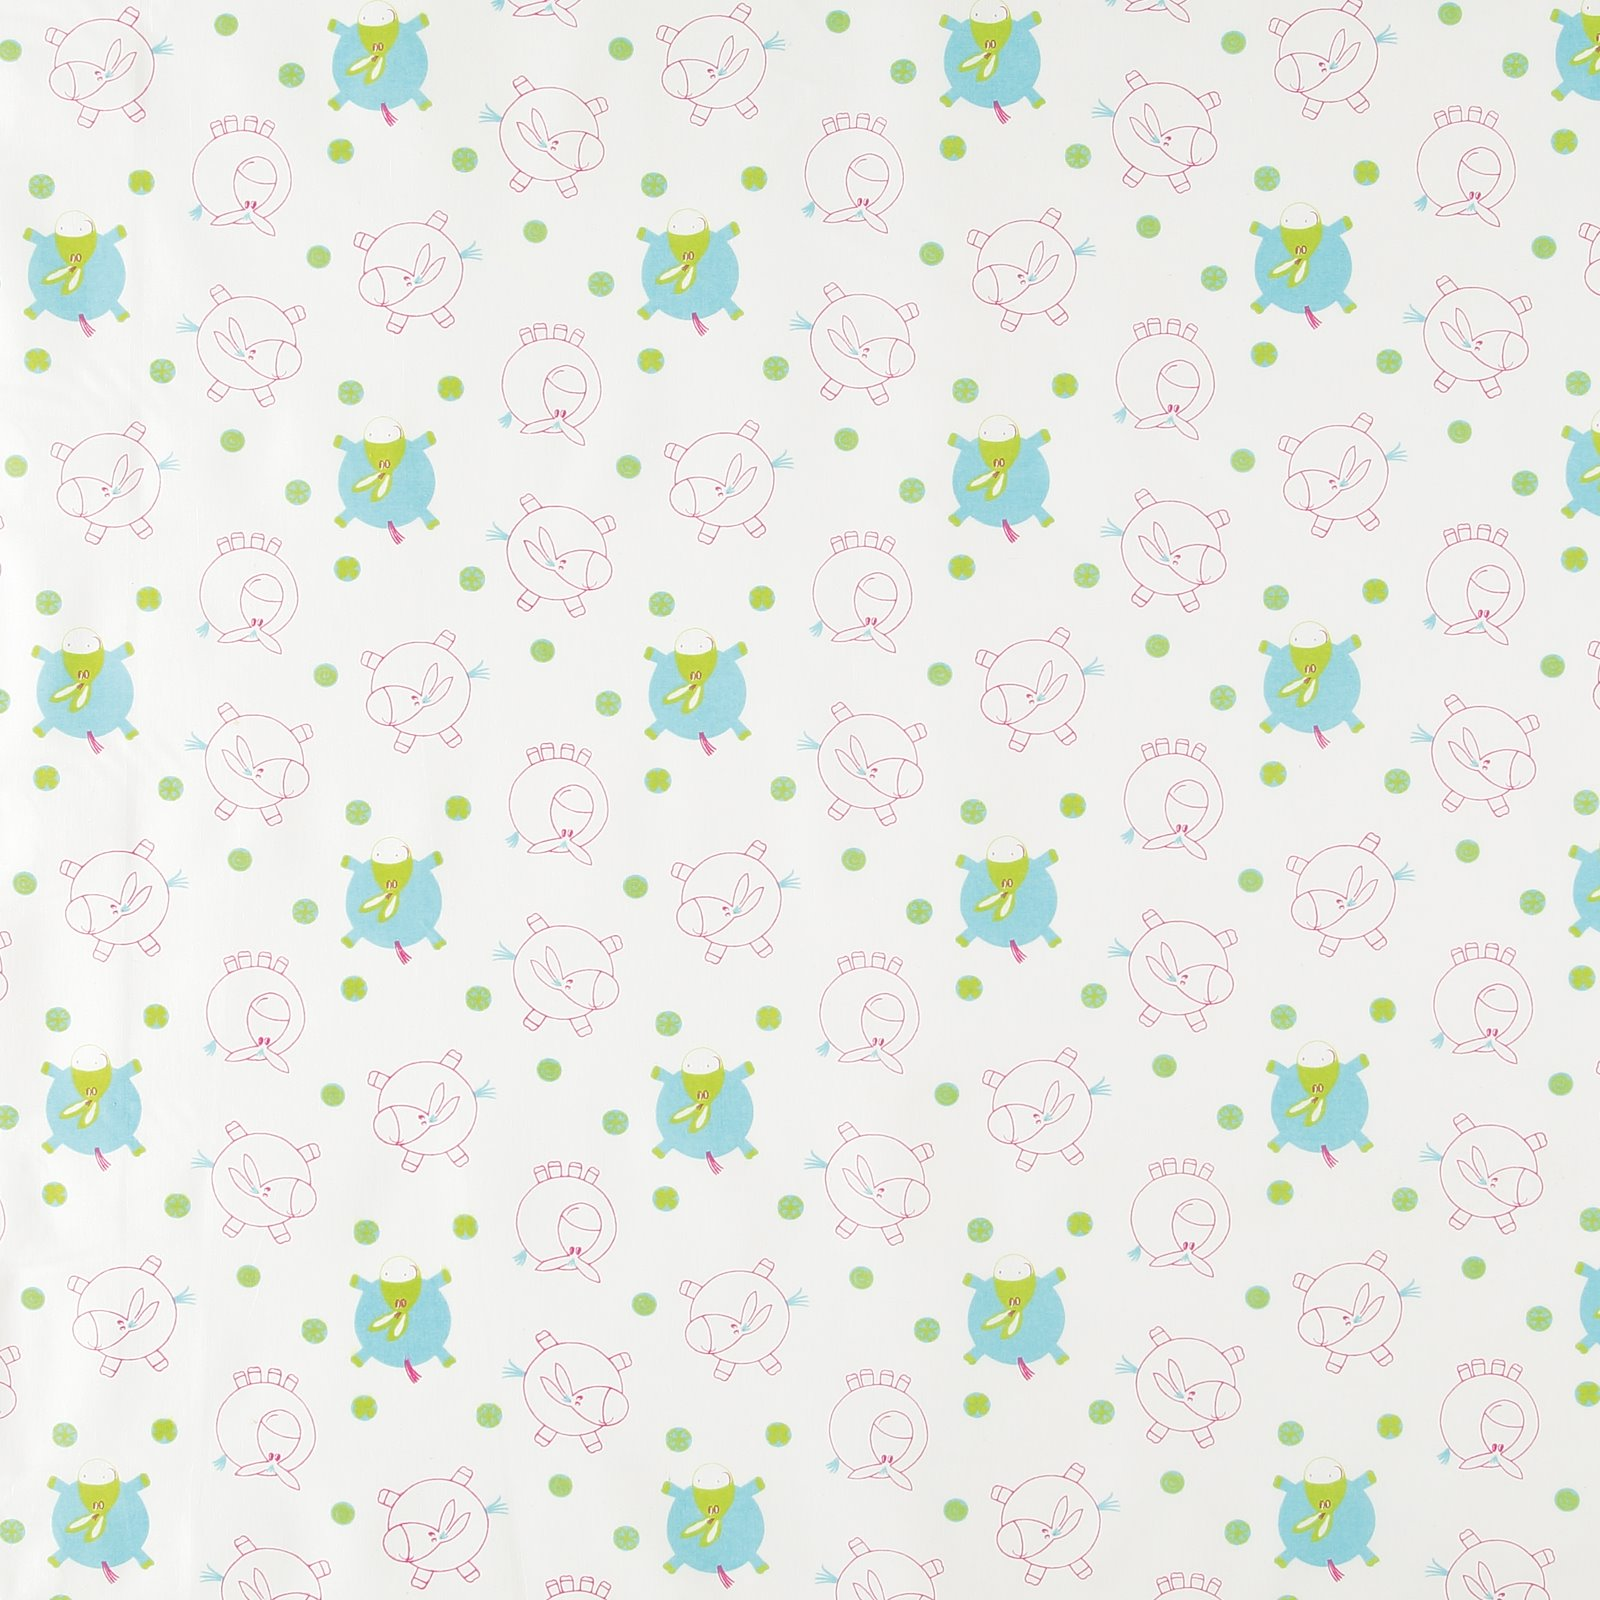 Cotton cream with turquoise donkey 780467_pack_sp